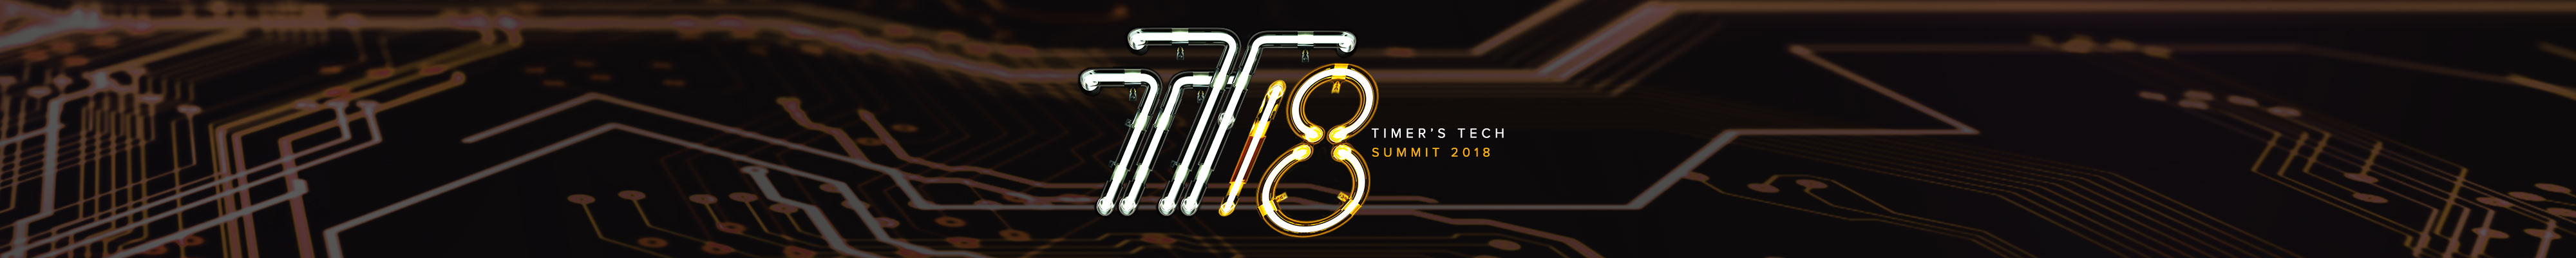 Timer's Tech Summit 2018